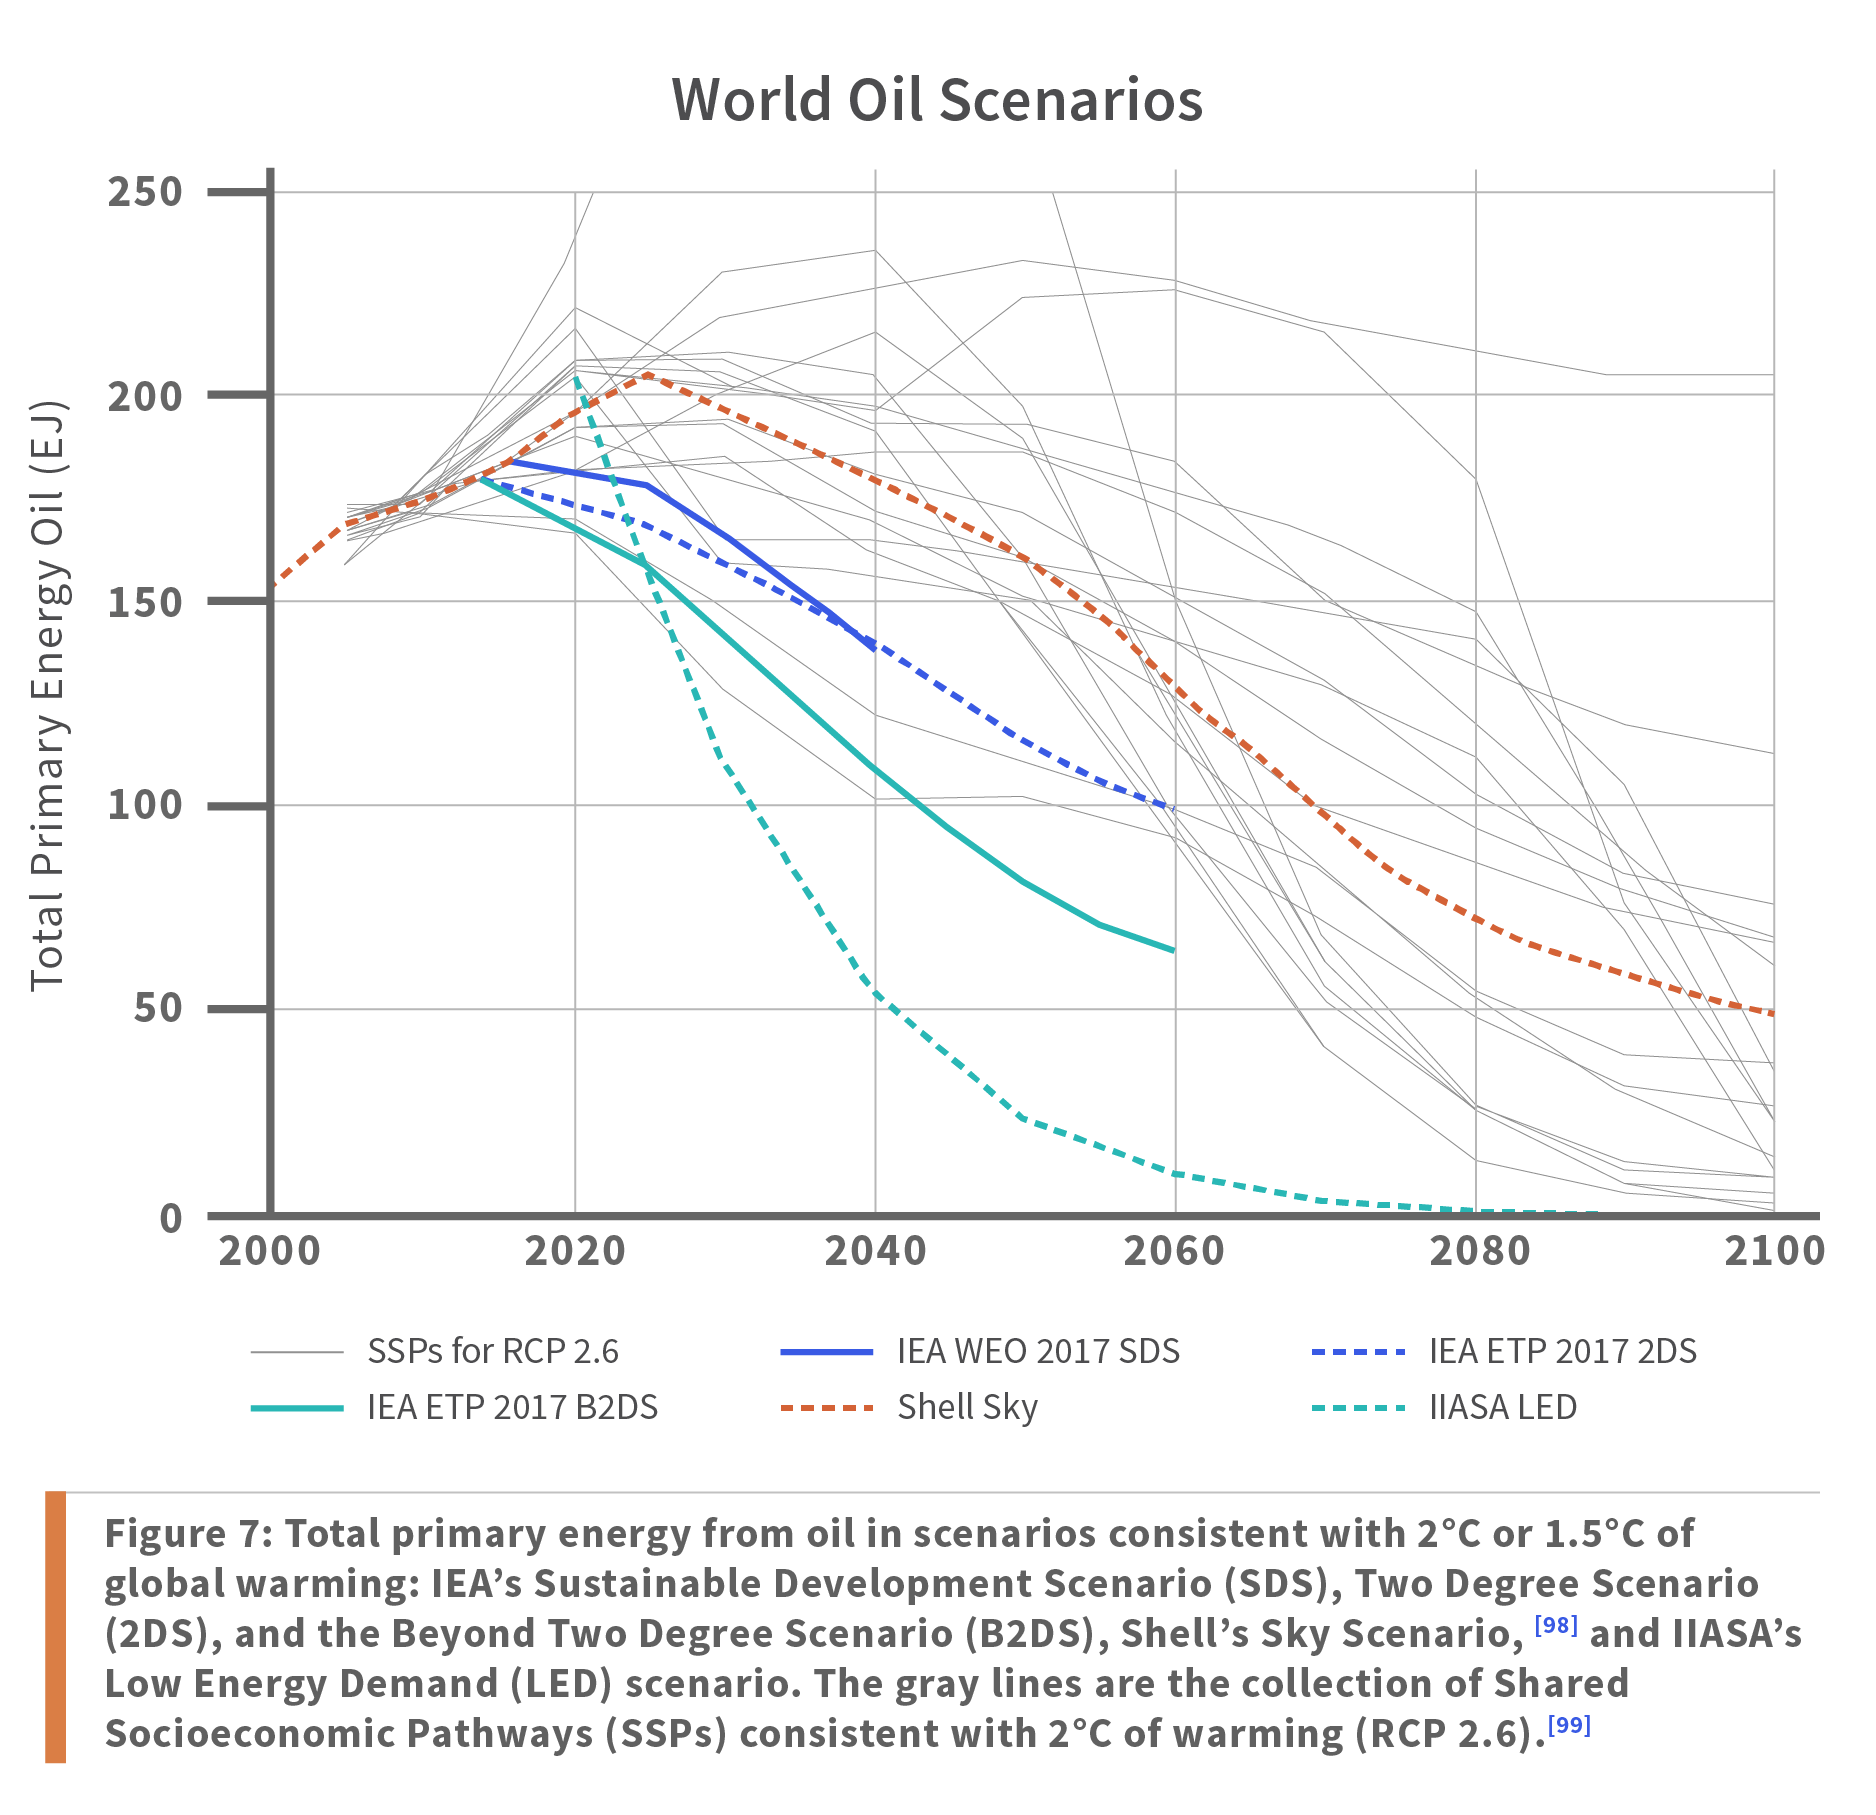 Figure 7: Total primary energy from oil in scenarios consistent with 2°C or 1.5°C of global warming: IEA's Sustainable Development Scenario (SDS), Two Degree Scenario (2DS), and the Beyond Two Degree Scenario (B2DS), Shell's Sky Scenario, and IIASA's Low Energy Demand (LED) scenario. The gray lines are the collection of Shared Socioeconomic Pathways (SSPs) consistent with 2°C of warming (RCP 2.6).